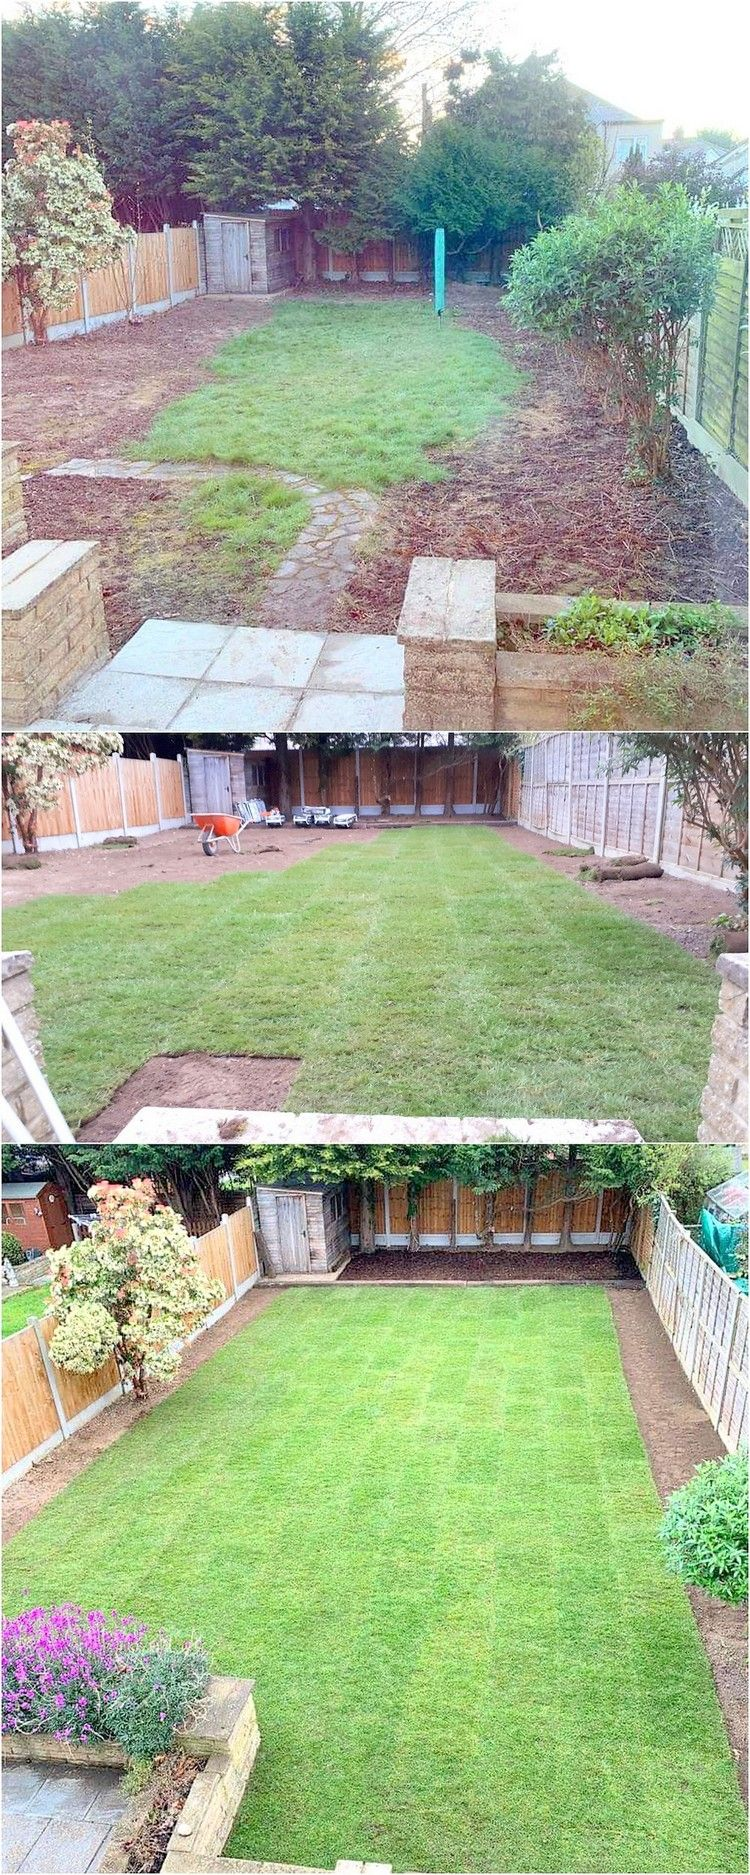 Outdoor Garden Project Ideas Outdoor Garden Is Adoptable In One Condition If It Is More Grassy And Gre Garden Decor Projects Outdoor Organic Raised Garden Beds